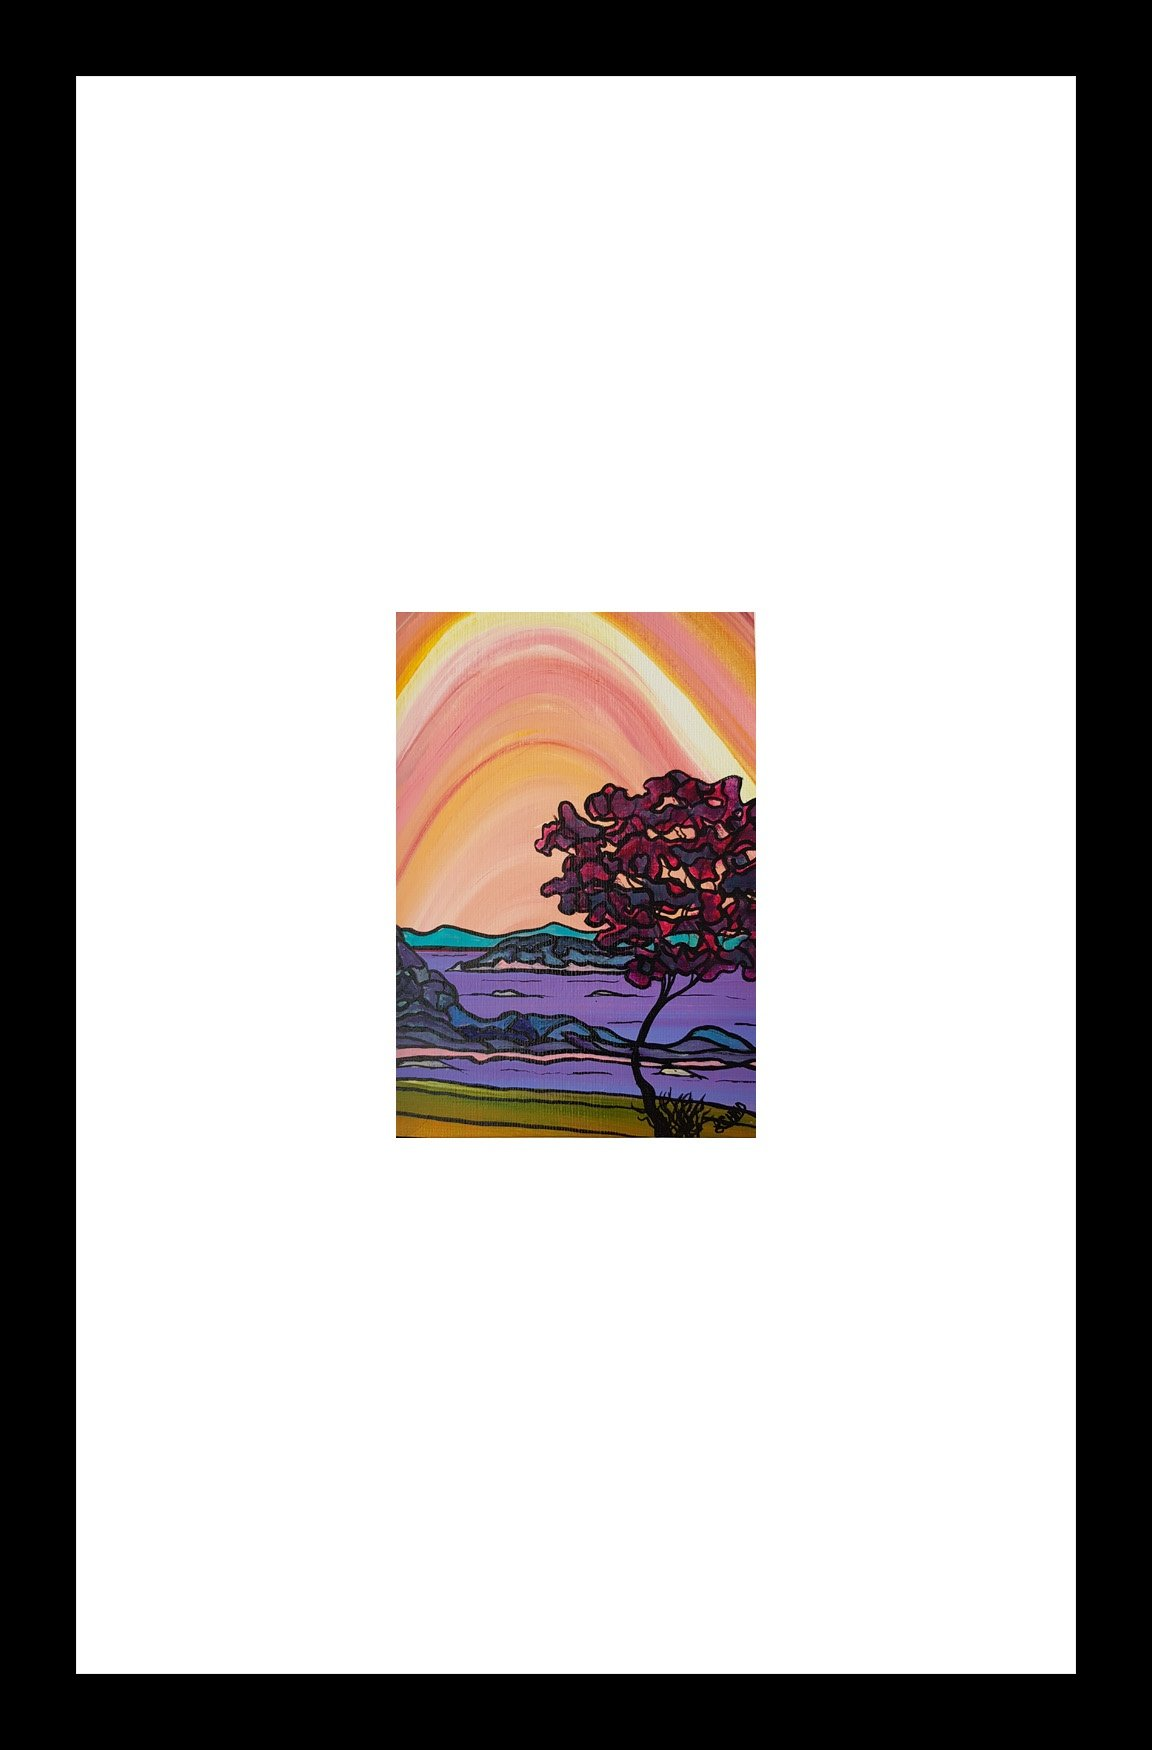 """Neck Point Sunset"" [2018] Image: 5"" x 7"". Framed: 10"" x 16"" Acrylic on 246 lb. paper $200.00"